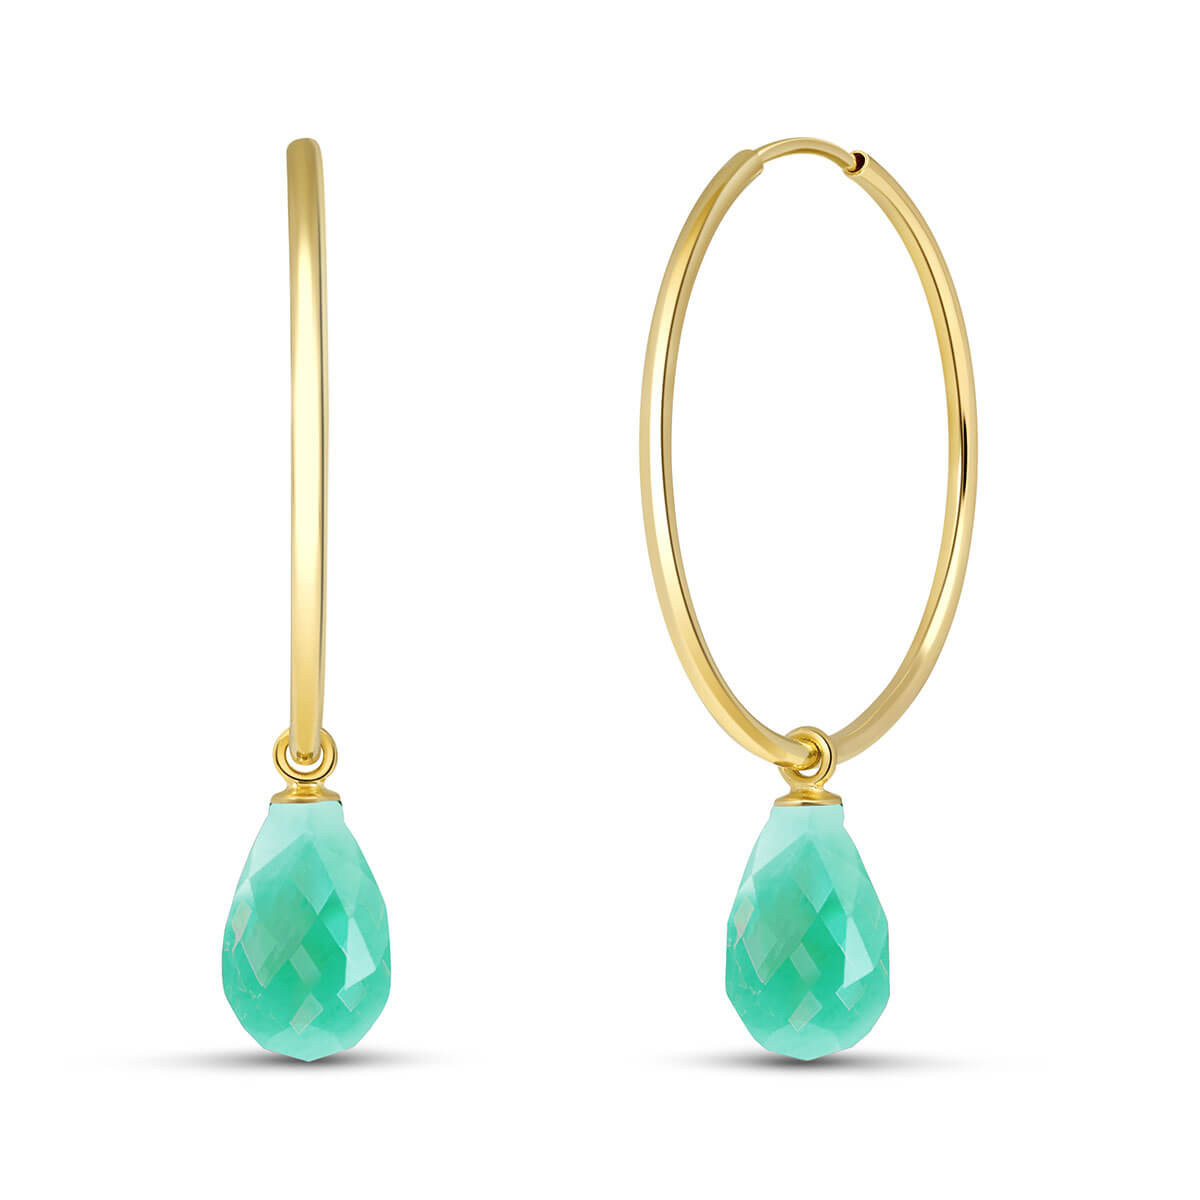 Emerald Halo Earrings 6.6 ctw in 9ct Gold